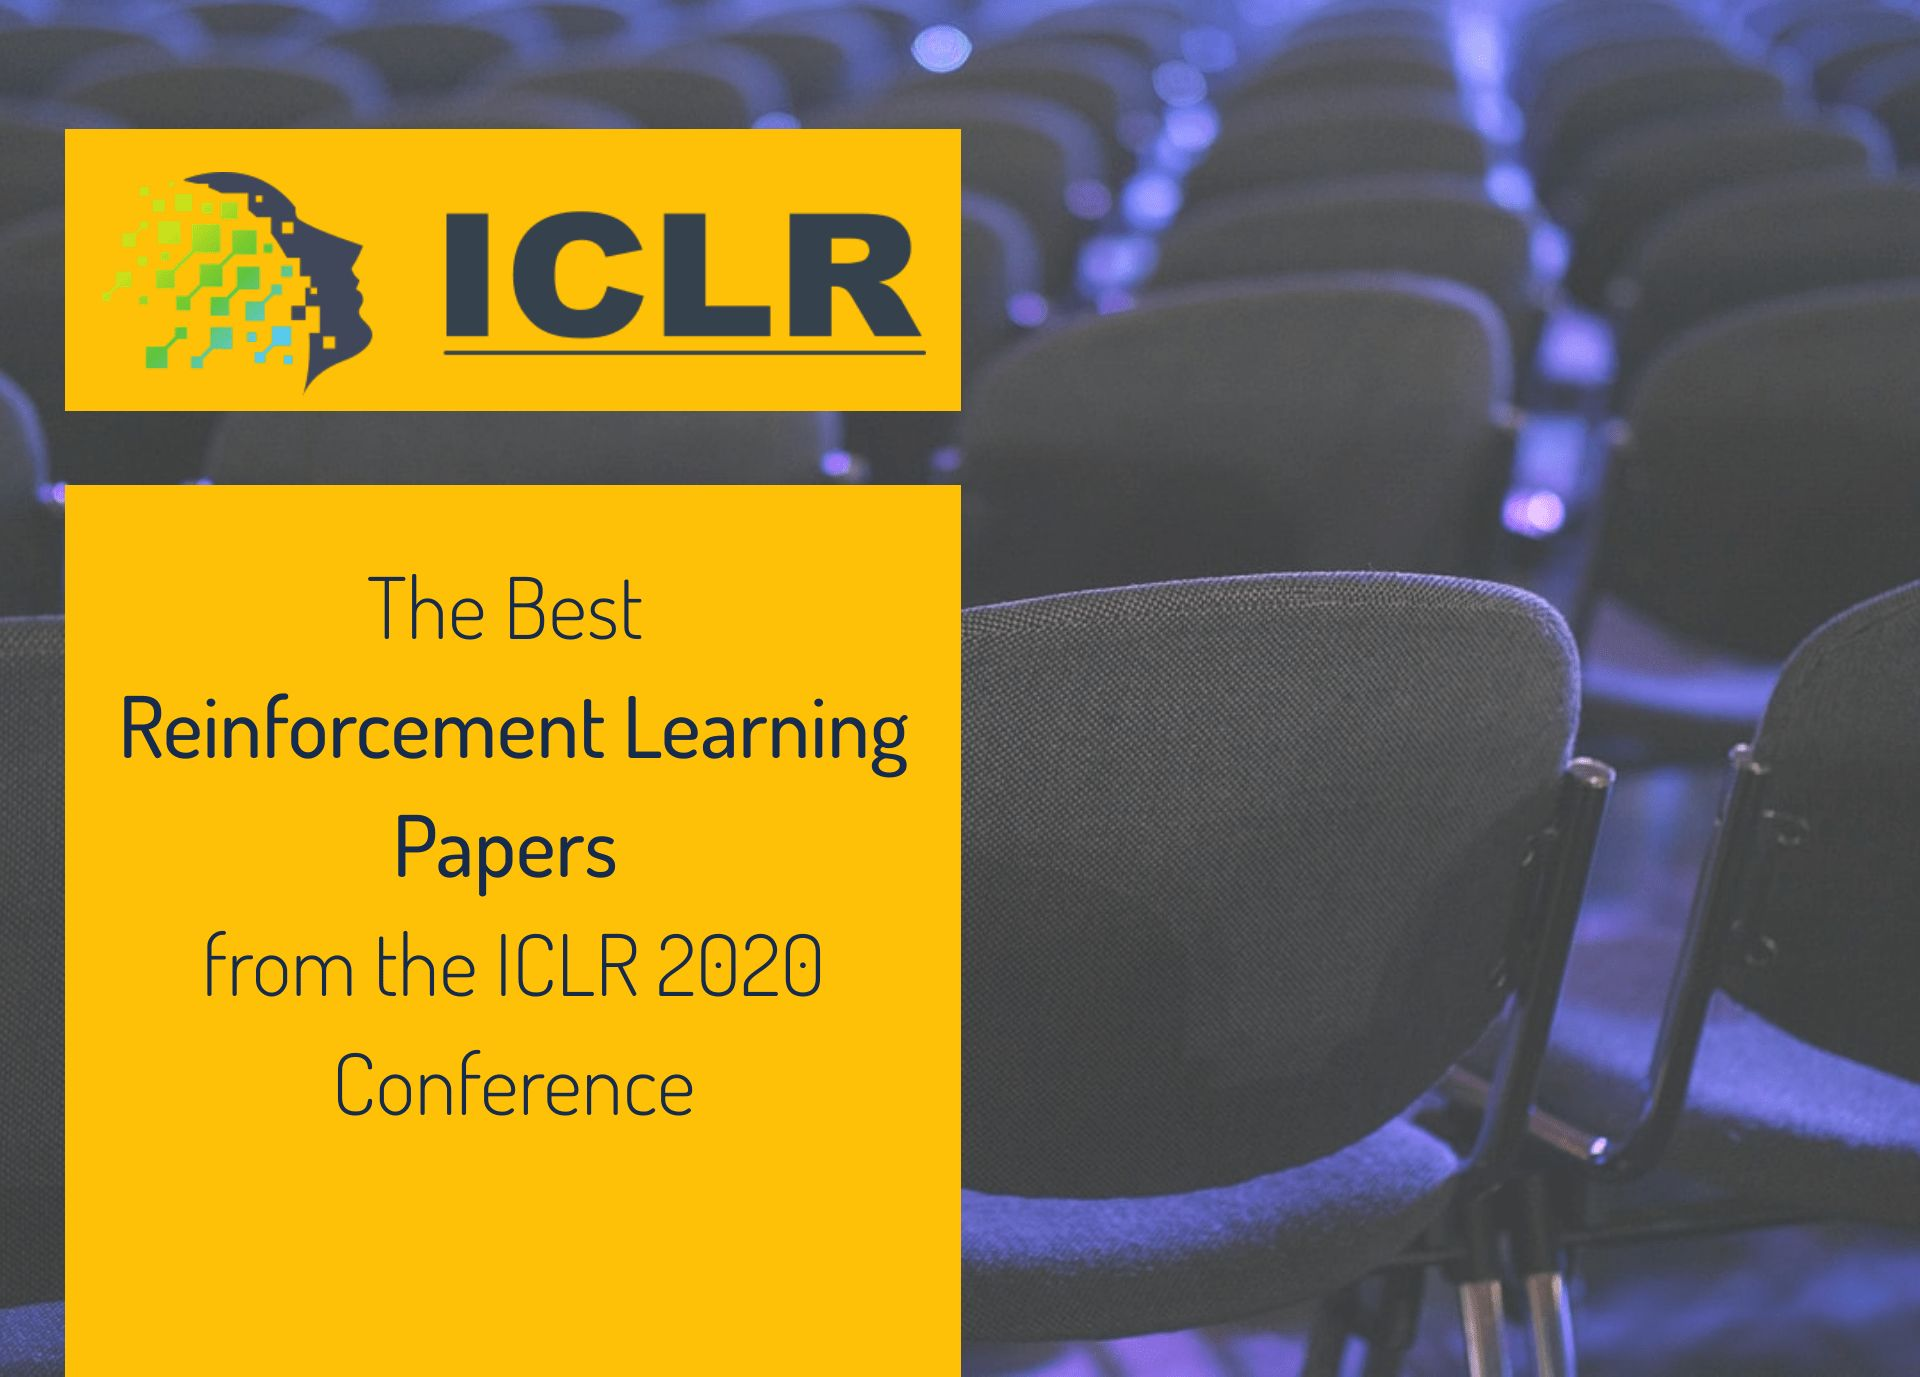 /the-iclr-2020-conference-reinforcement-learning-papers-demystified-41l3taa feature image